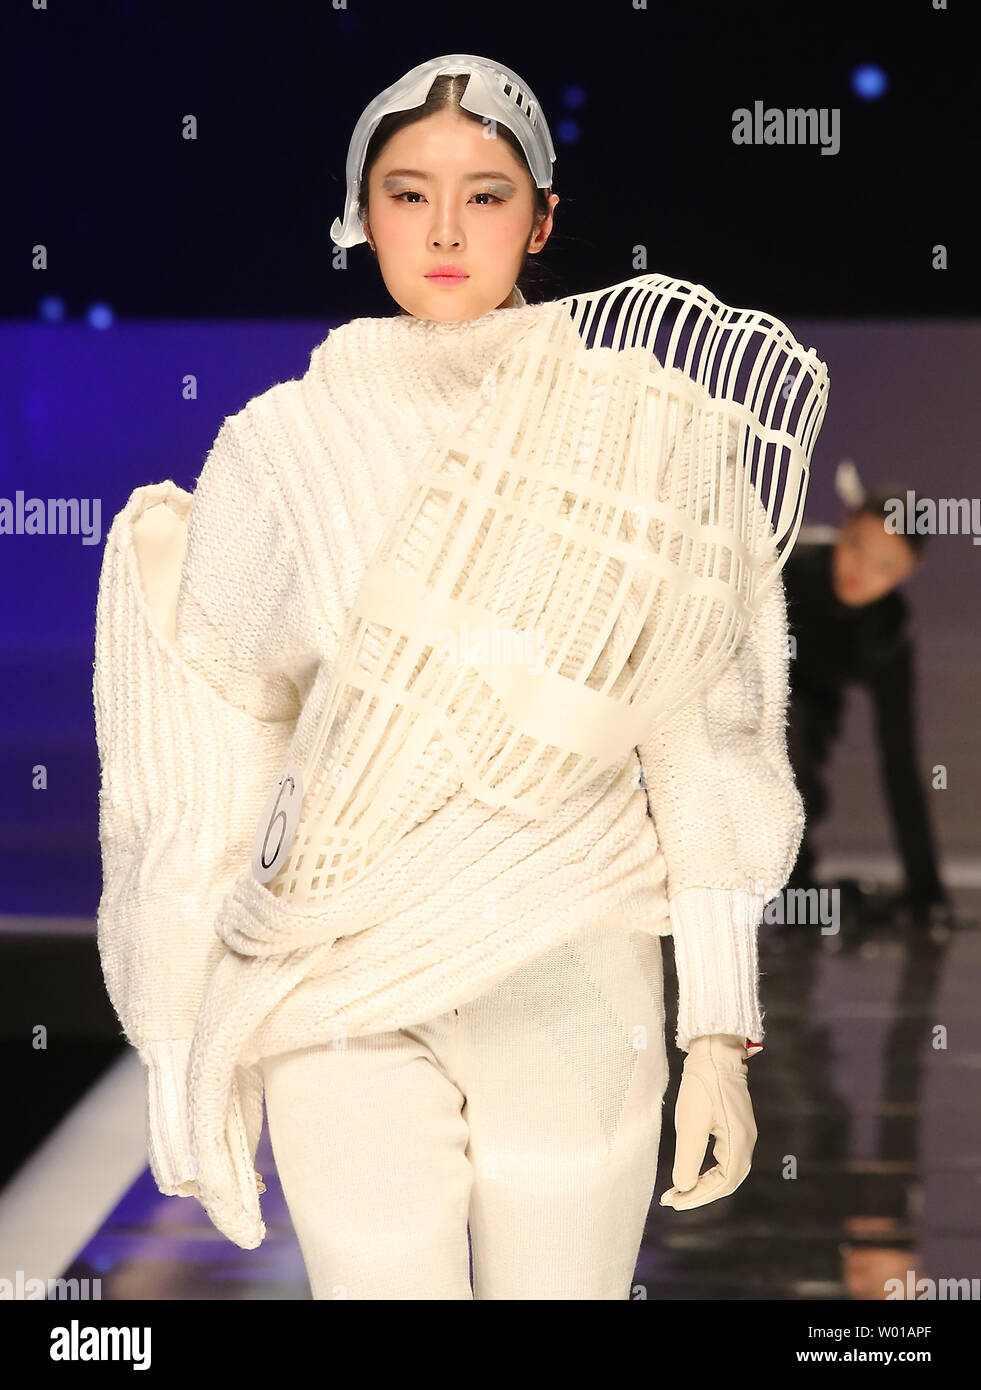 Chinese Models Showcase Fashion Designs During The Opening Ceremony Fashion Show China International Young Fashion Designers Contest Final At The Start Of China S Fashion Week In Beijing On March 25 2016 Chinese